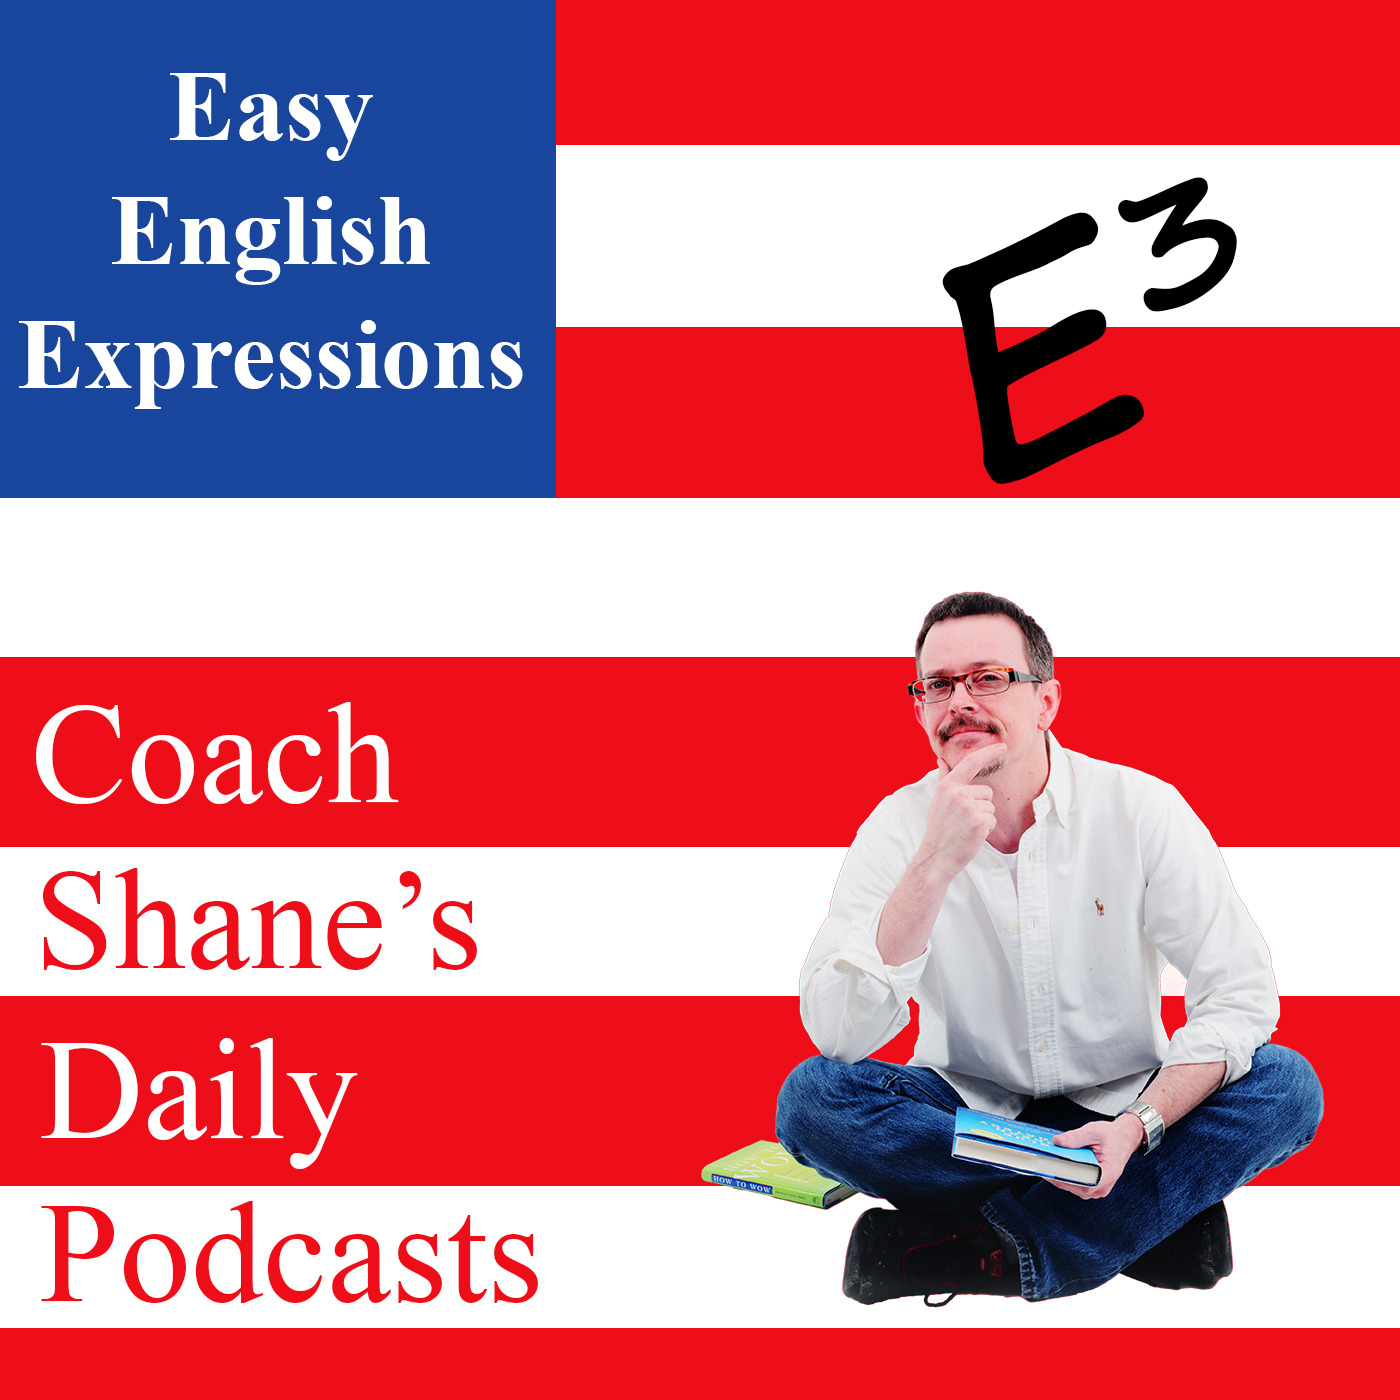 67 Daily Easy English Expression PODCAST—a brouhaha